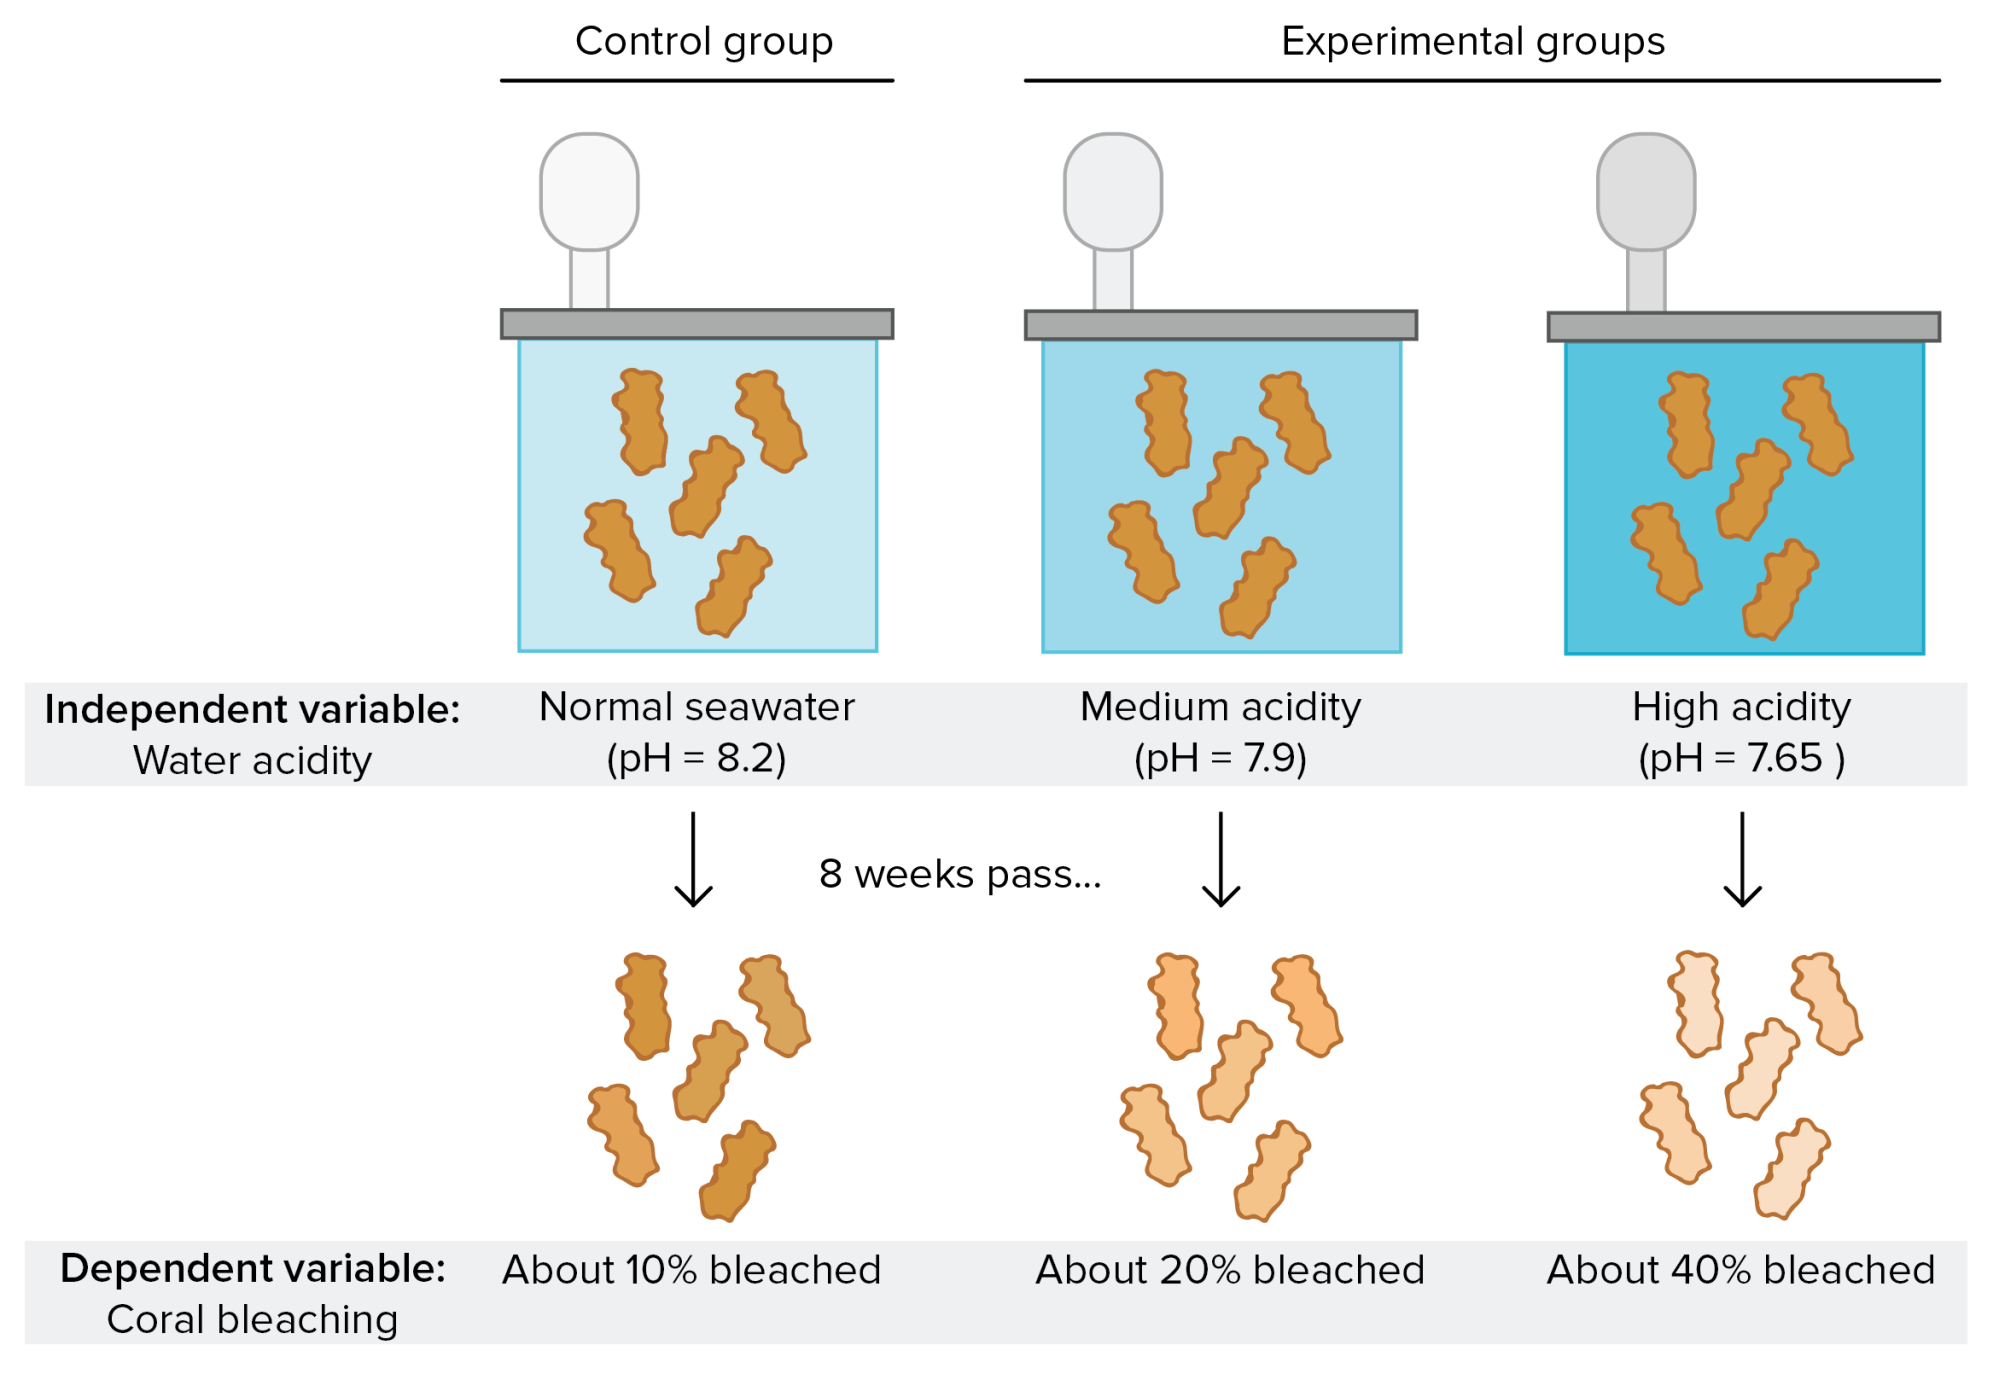 hight resolution of experimental setup to test effects of water acidity on coral bleaching control group coral